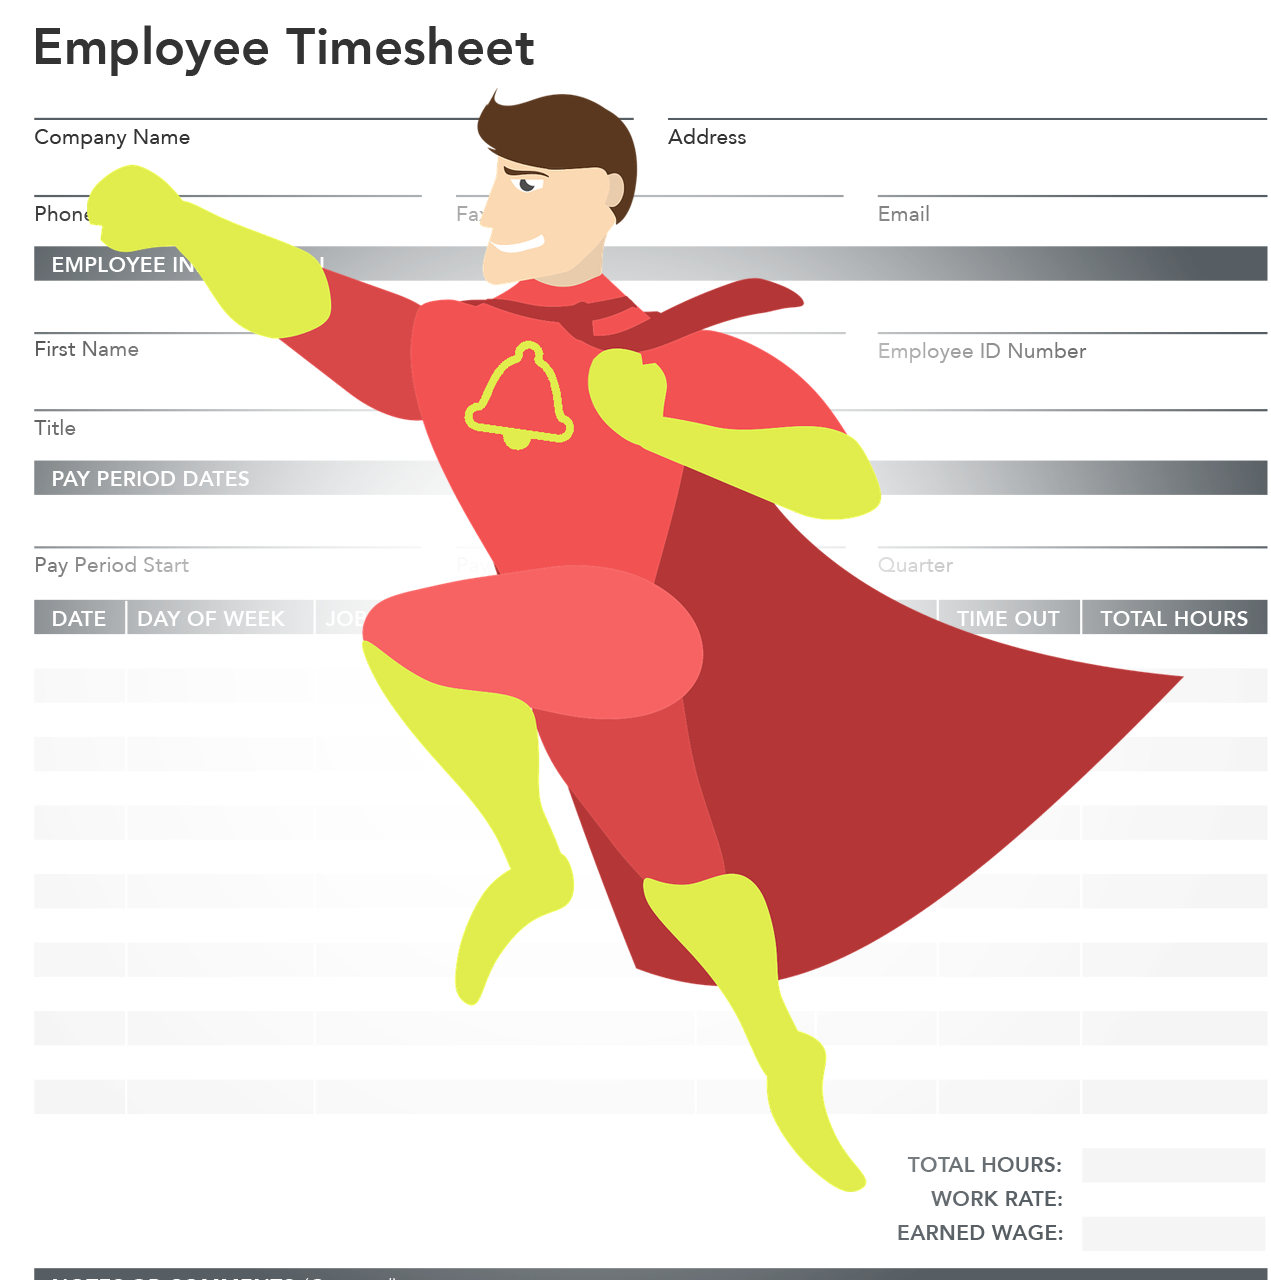 Form alerts and notifications can help make you a digital superhero.